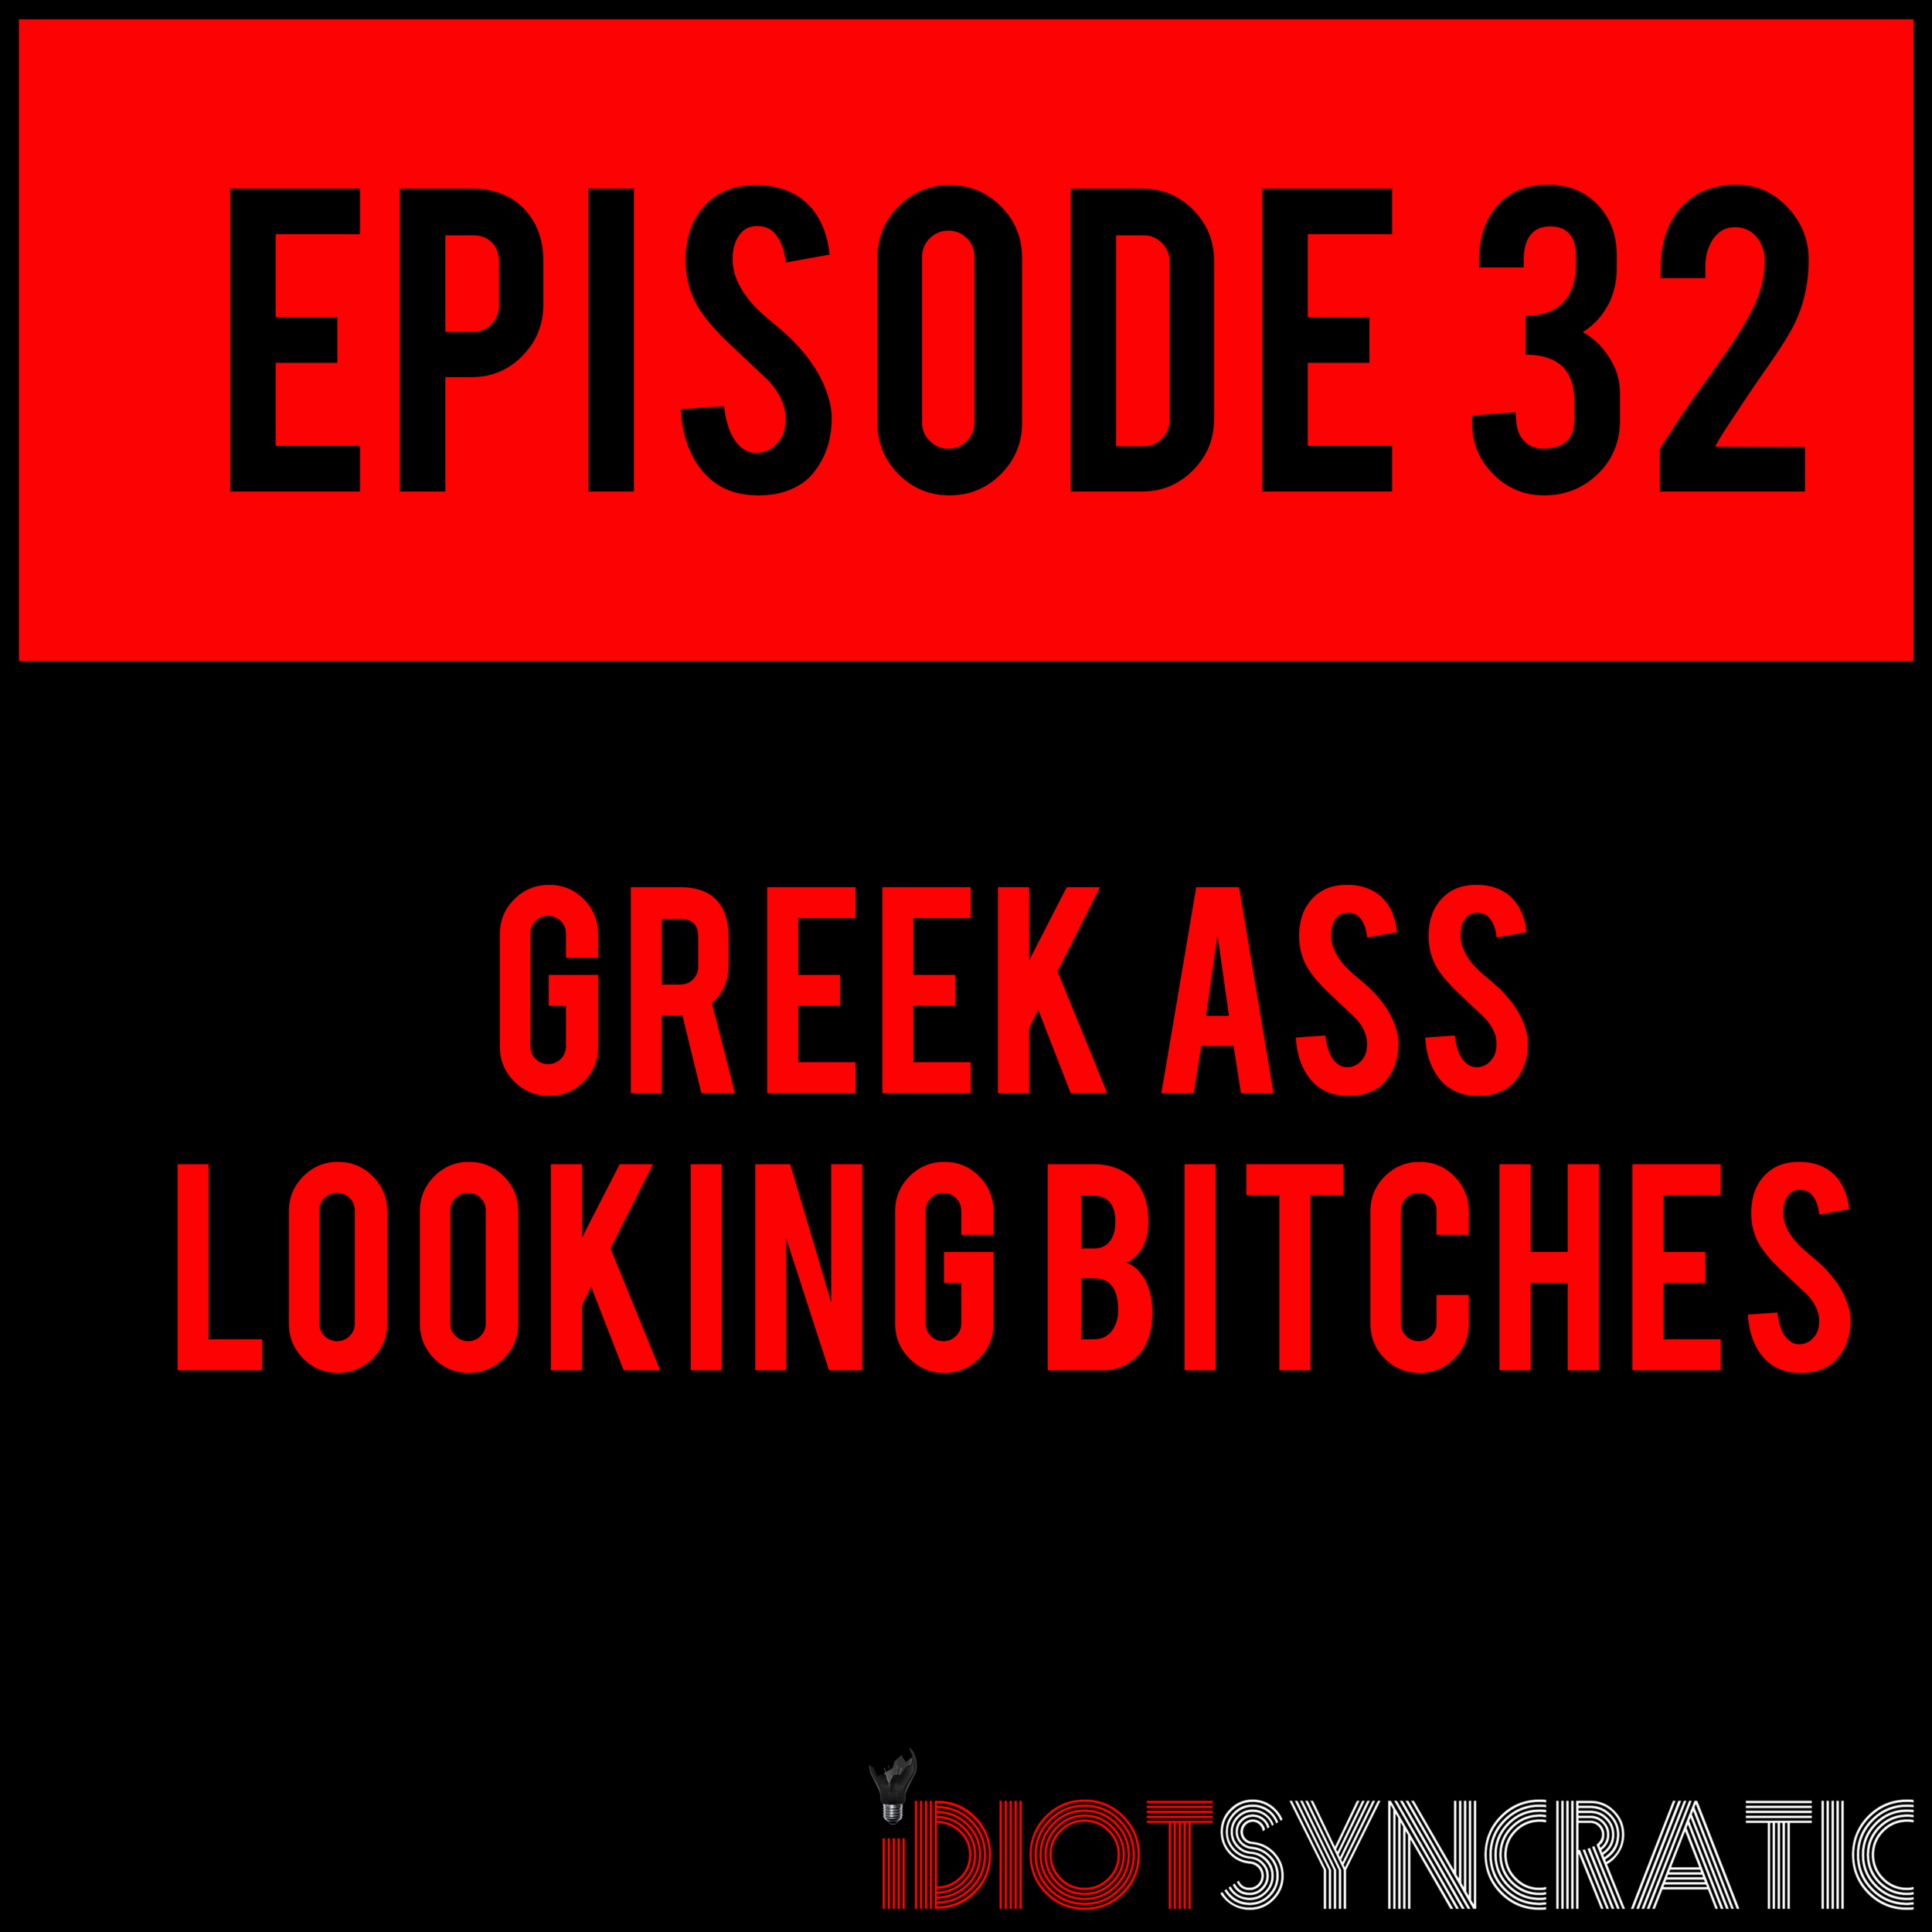 EPISODE 32 - Get ready for this one. GREEK ASS LOOKING BITCHES - EPISODE 32 withPatrick Hunteris ready and waiting for you. It's like chalk on a nails board.